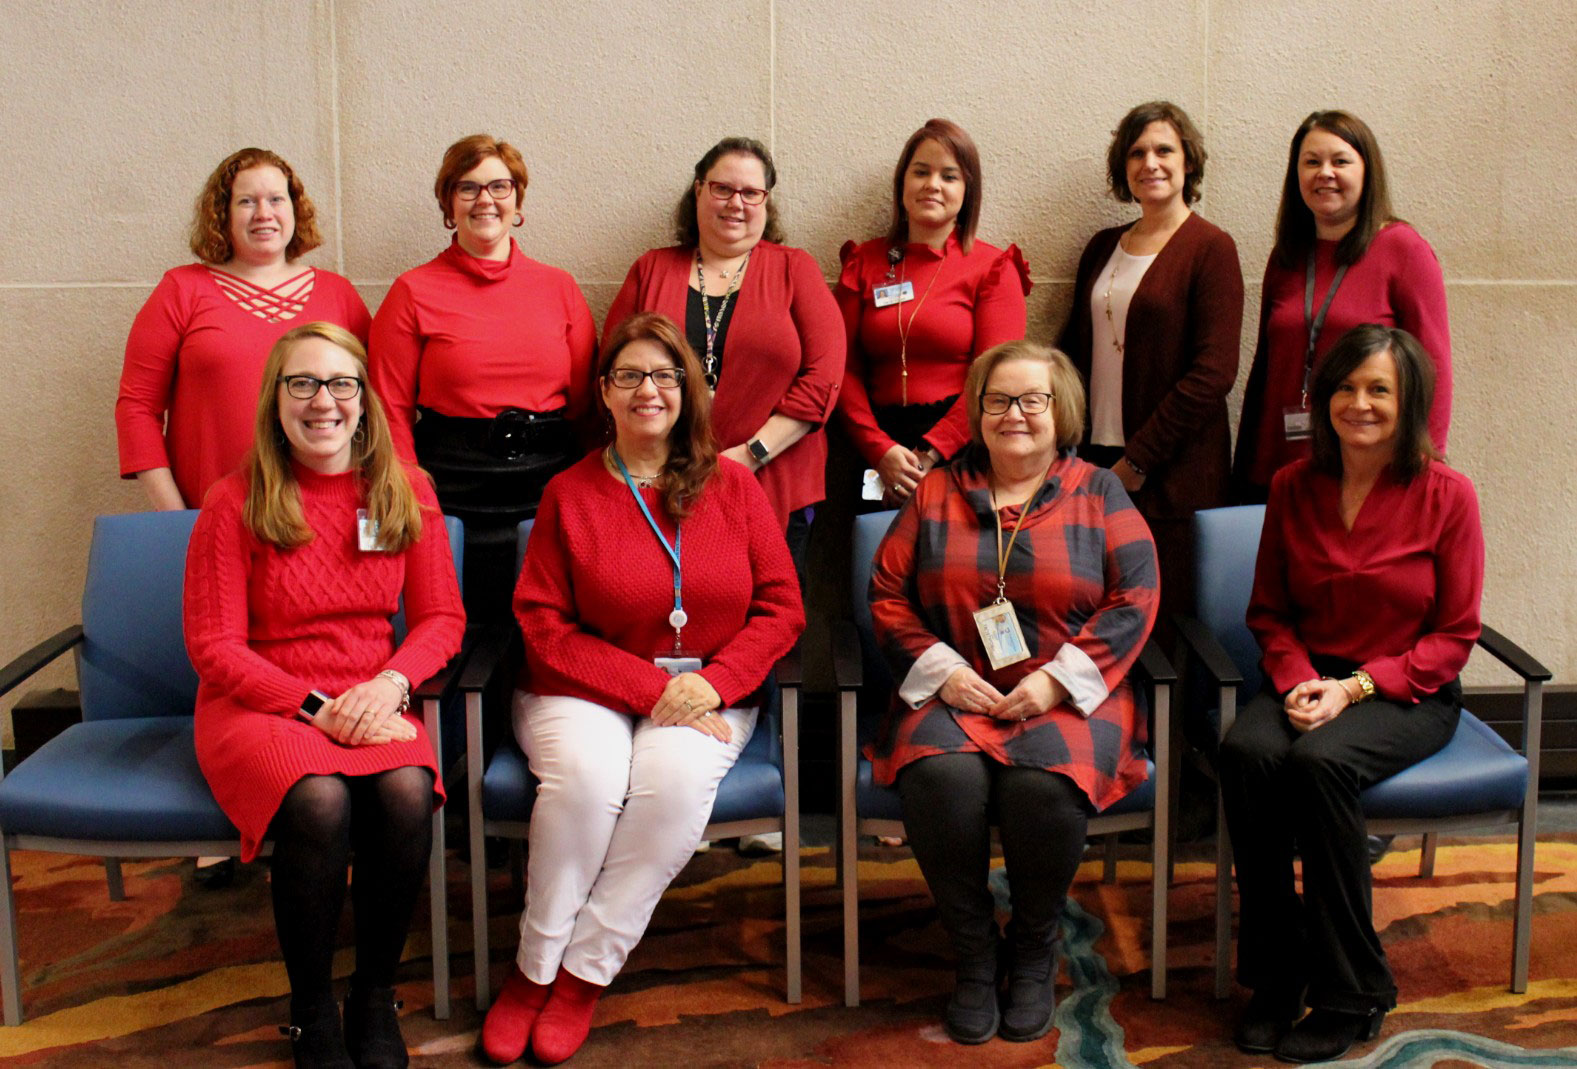 A group of 10 women is seen wearing various shades of red.